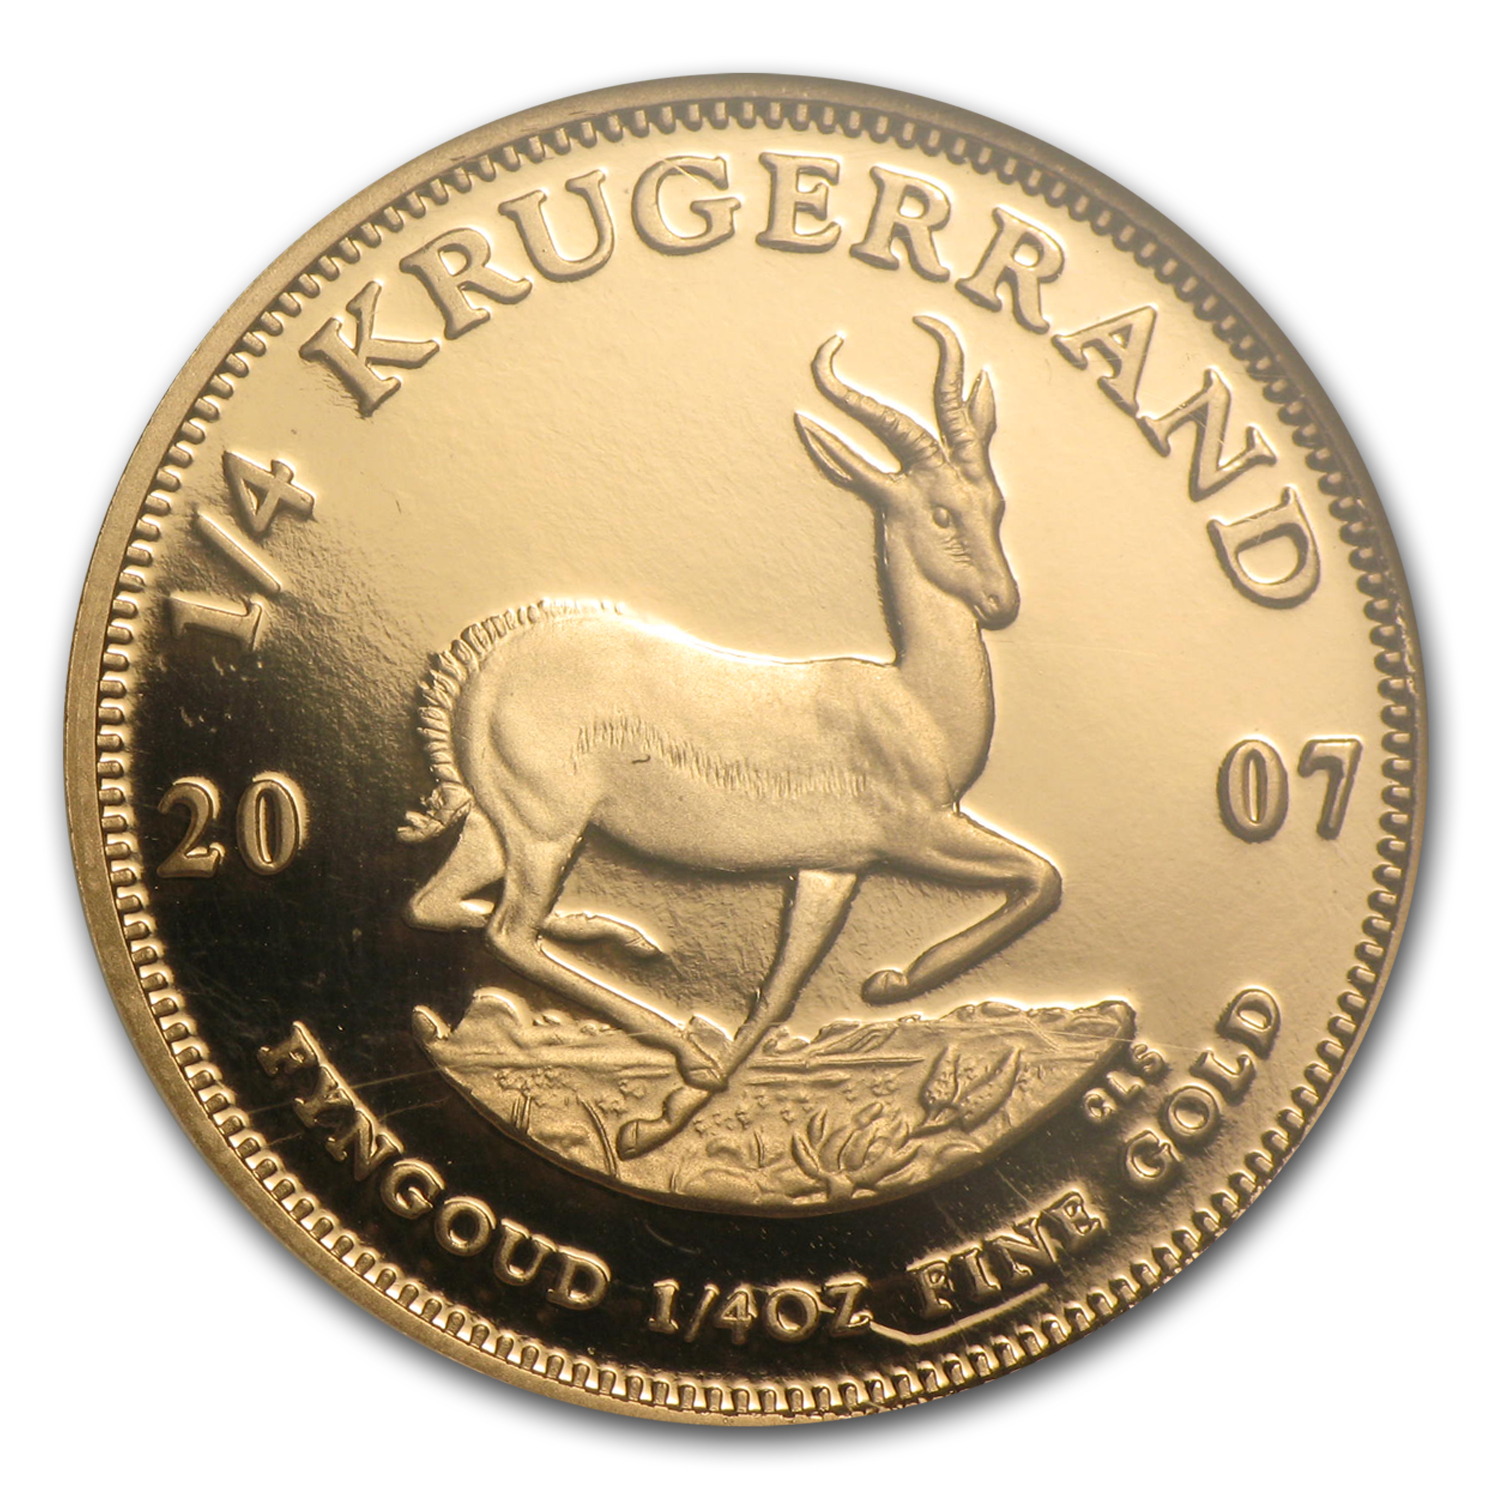 2007 1/4 oz Gold South African Krugerrand PF-69 NGC